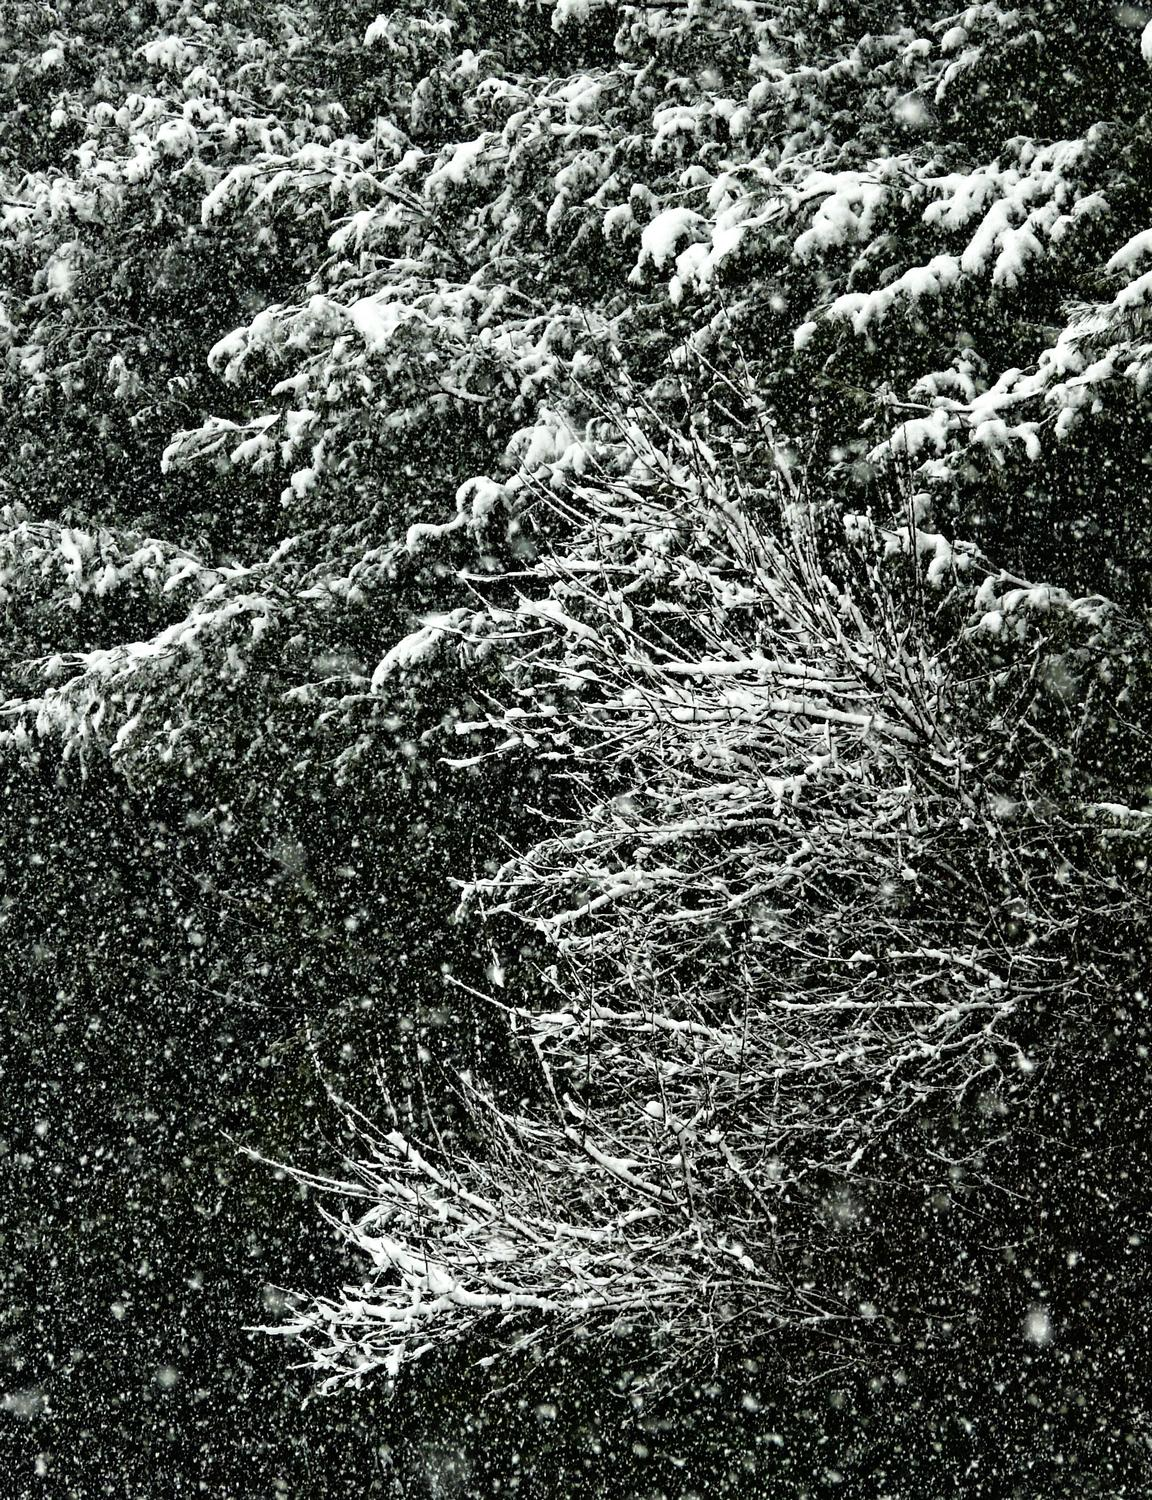 snow on branches of a pine tree-  Panasonic DMC-FZ18 - Still snowing. When will it stop? - - art  - photography - by Tony Karp